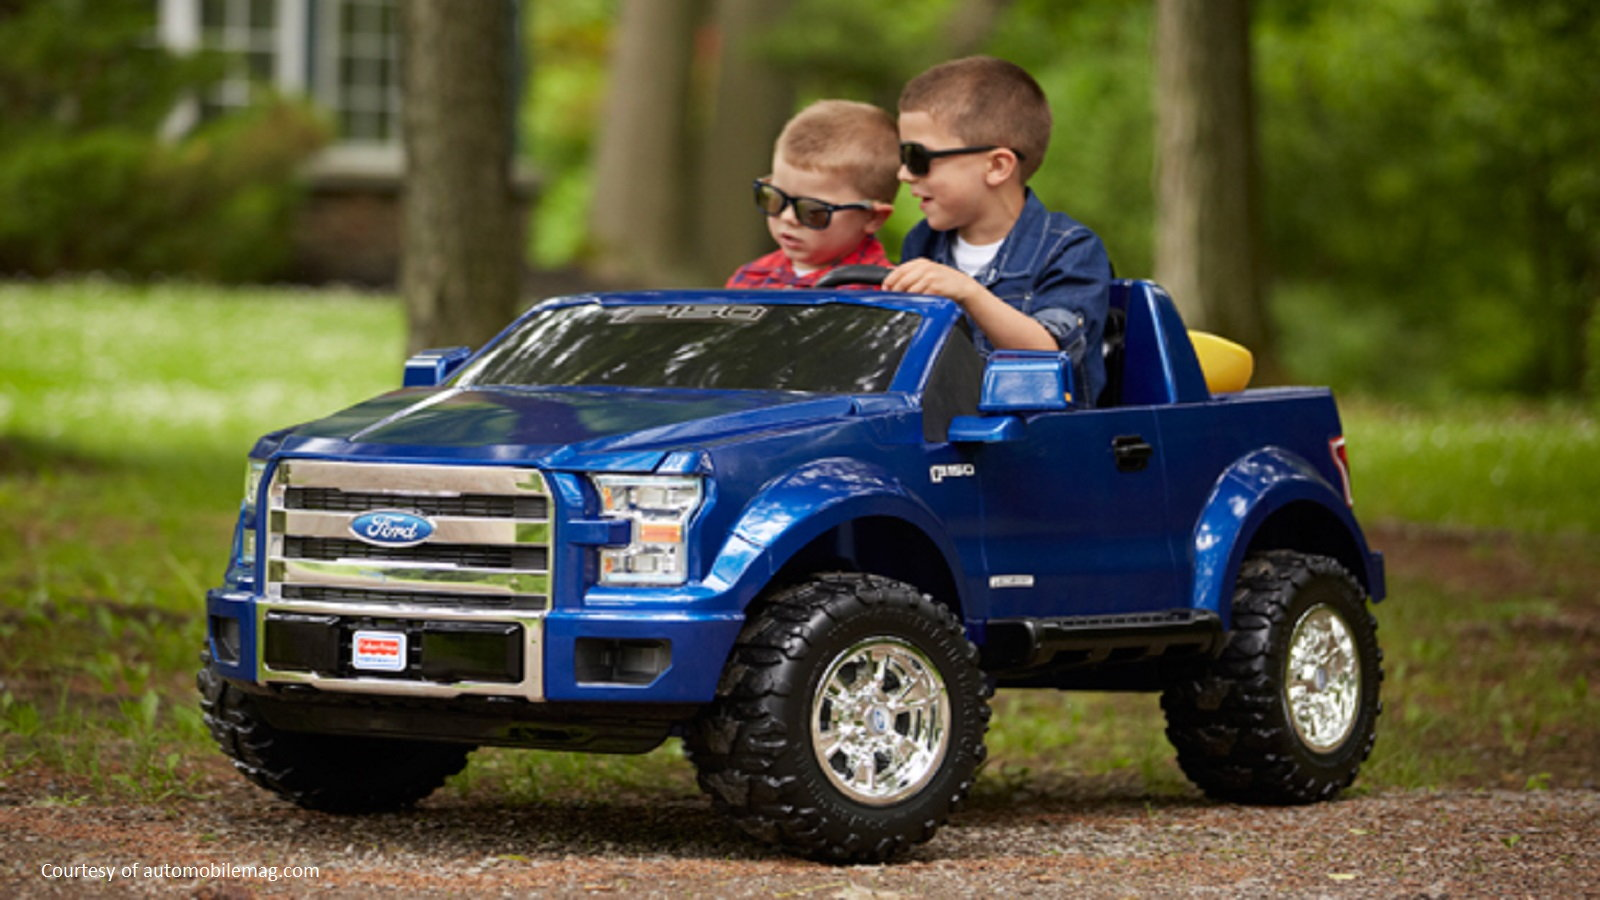 Market the New F-150